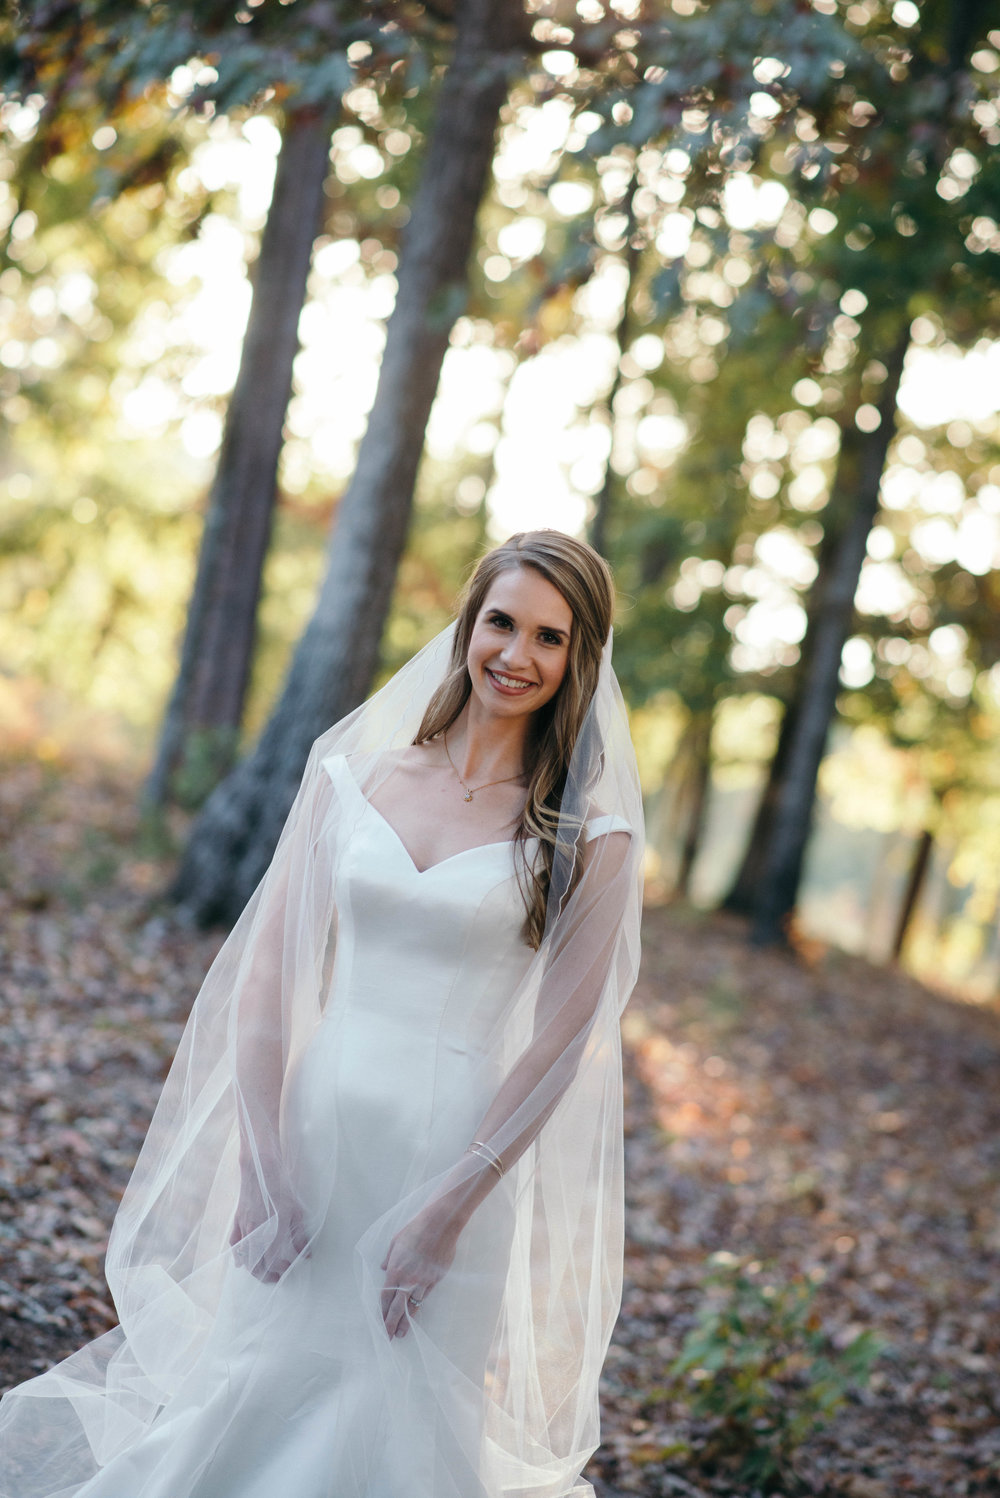 JuliaWilliams|Bridals|Color_MiraPhotographs-29.jpg